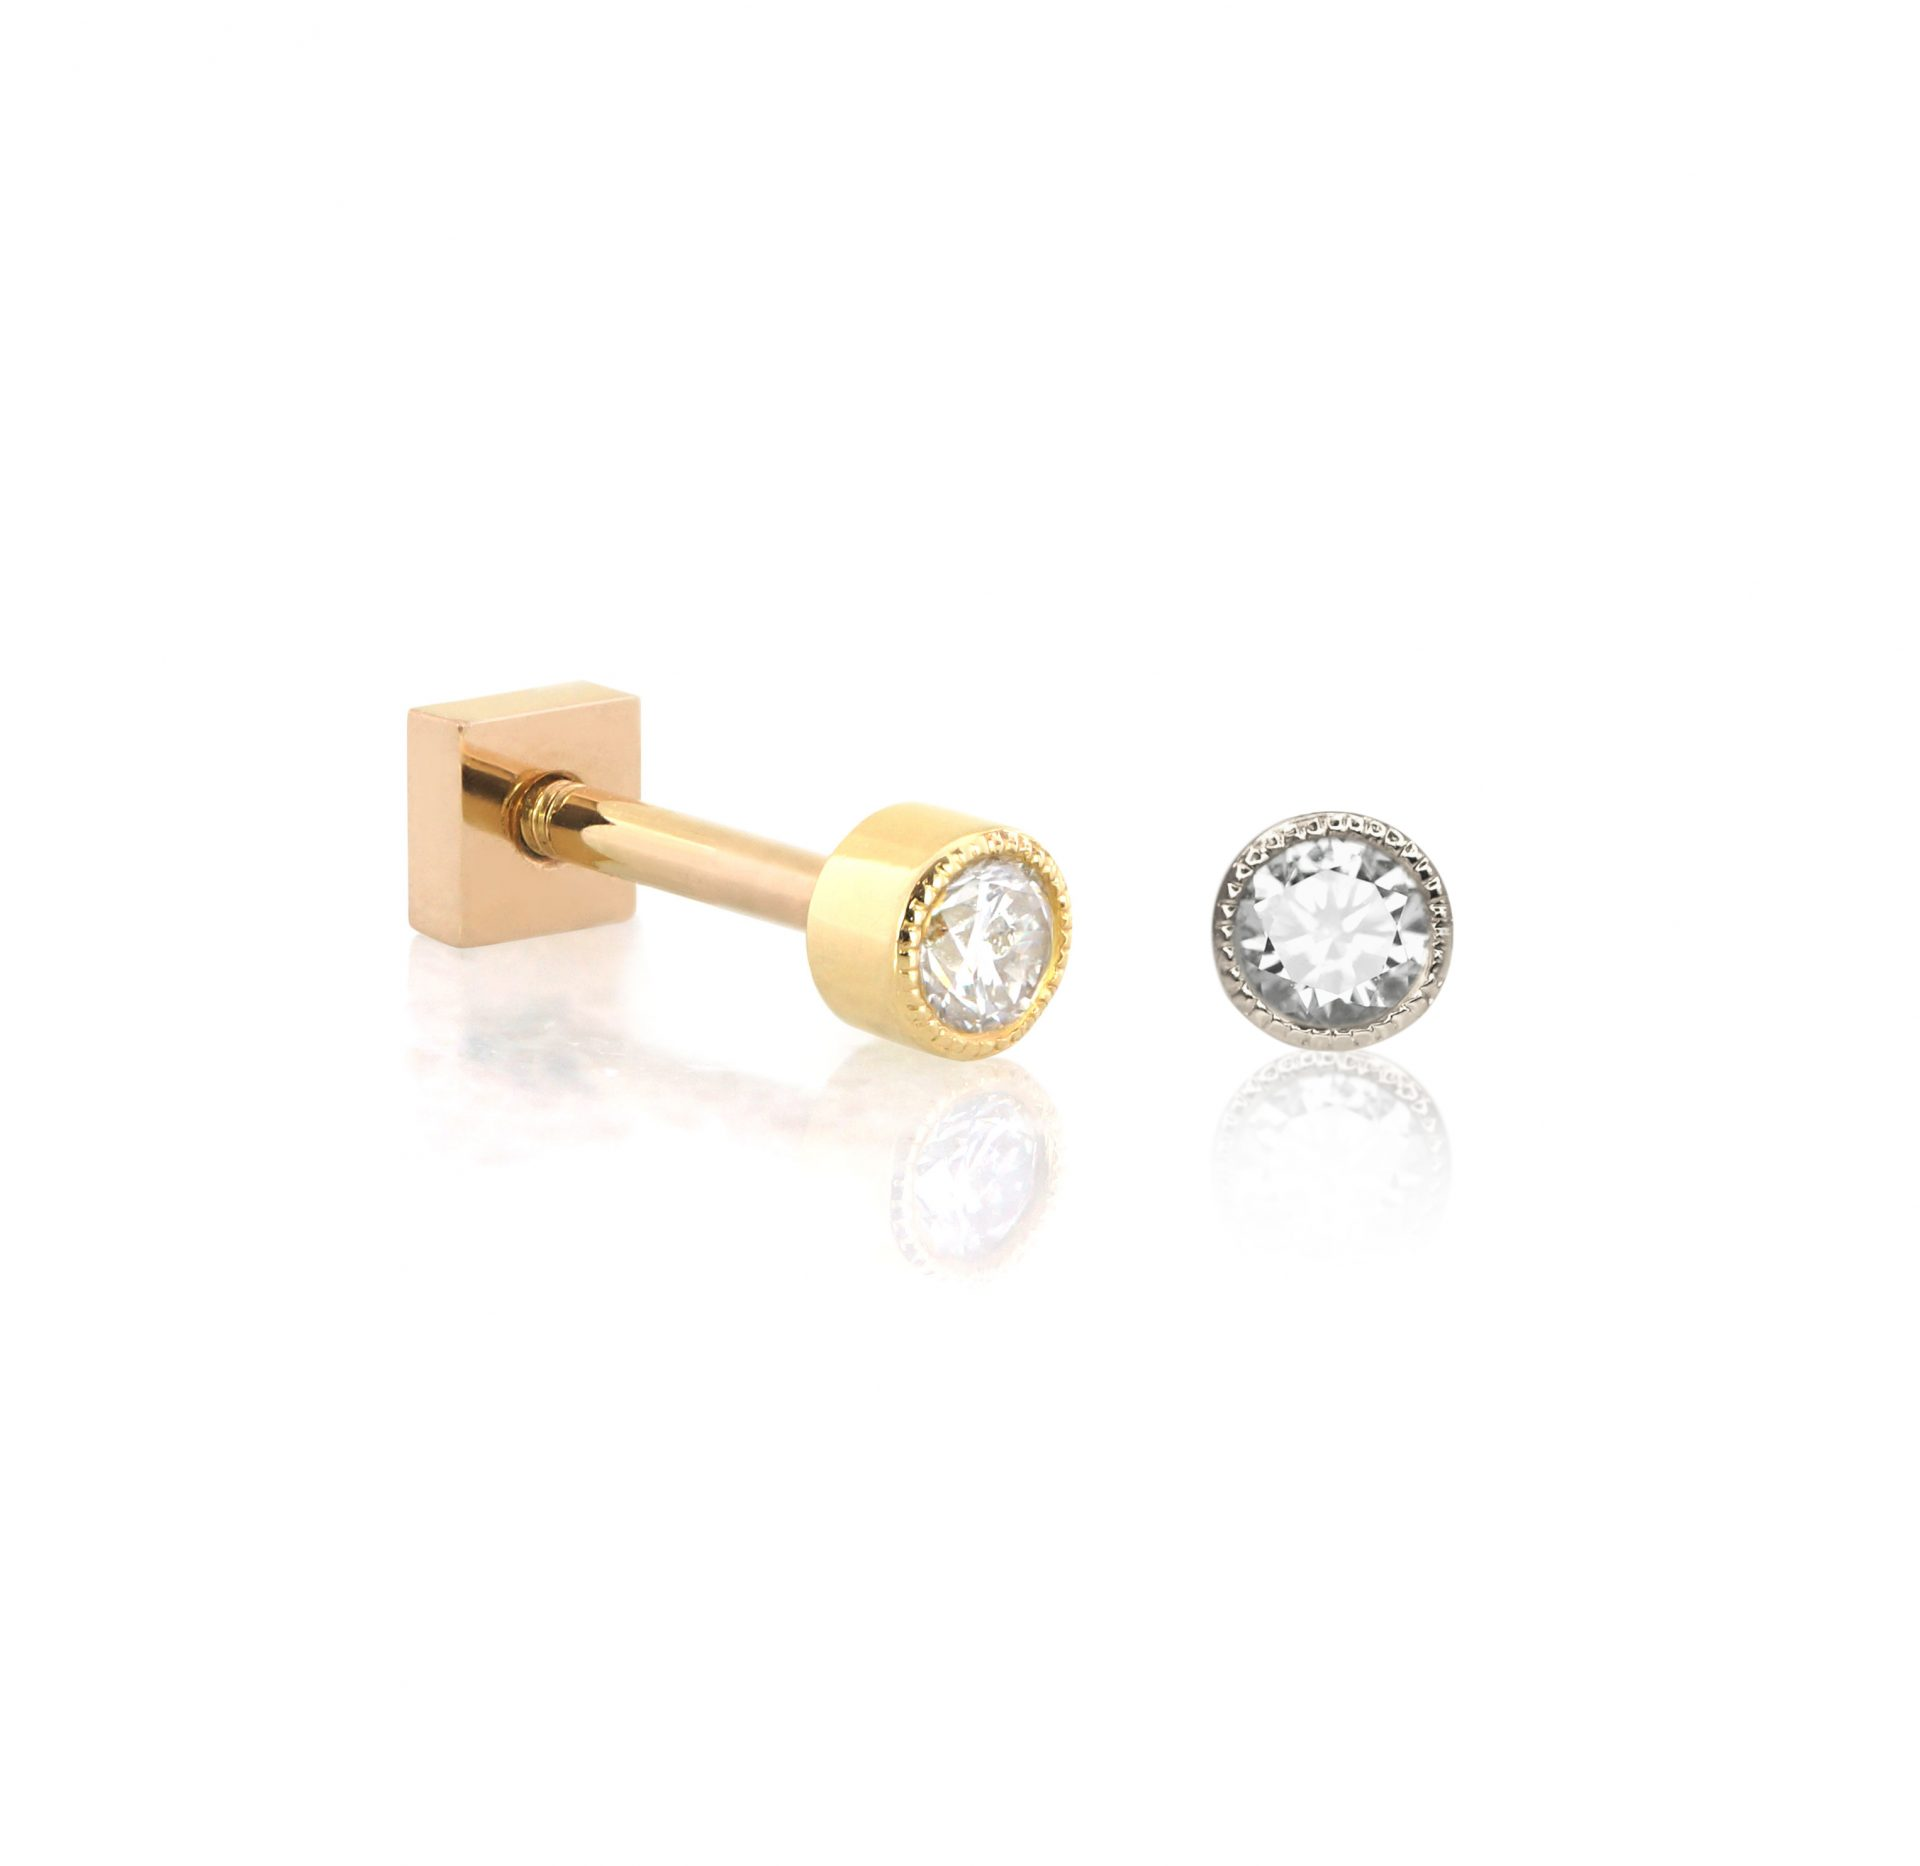 lena-cohen-london-milgrain-single-diamond-cartilage-helix-piercing-stud-18k-gold